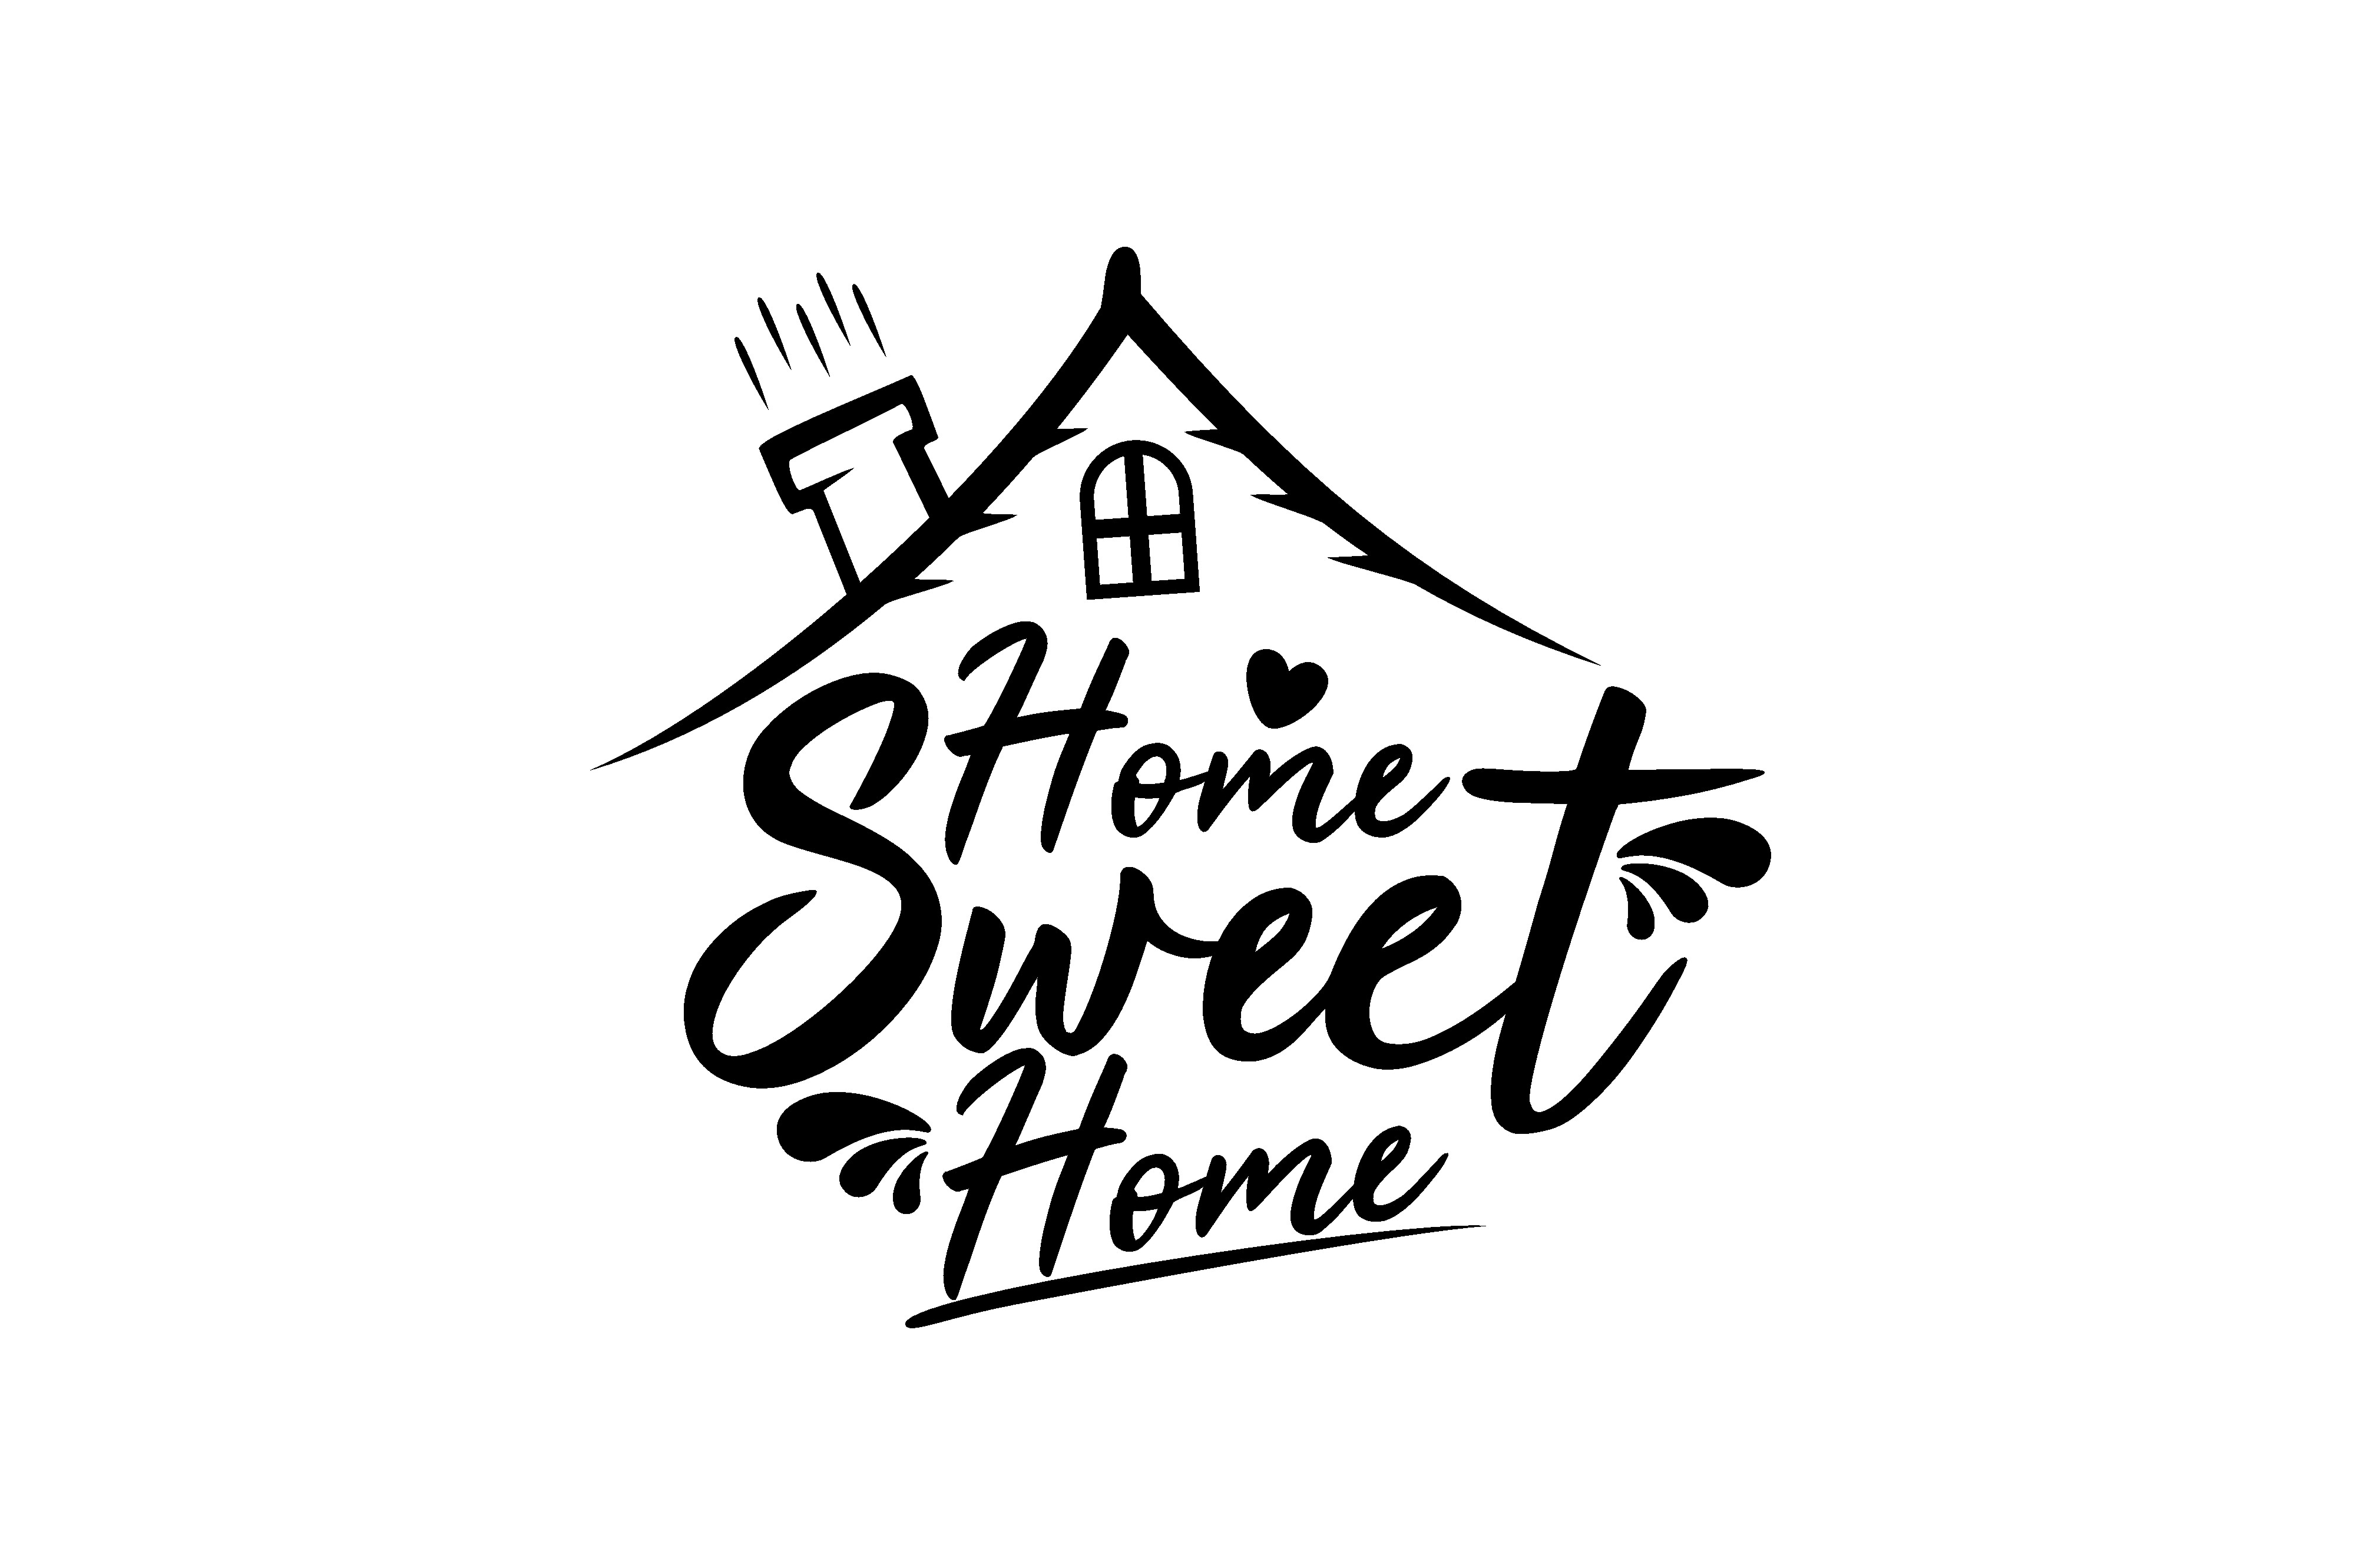 Download Free Home Sweet Home Grafik Von Chairul Ma Arif Creative Fabrica for Cricut Explore, Silhouette and other cutting machines.